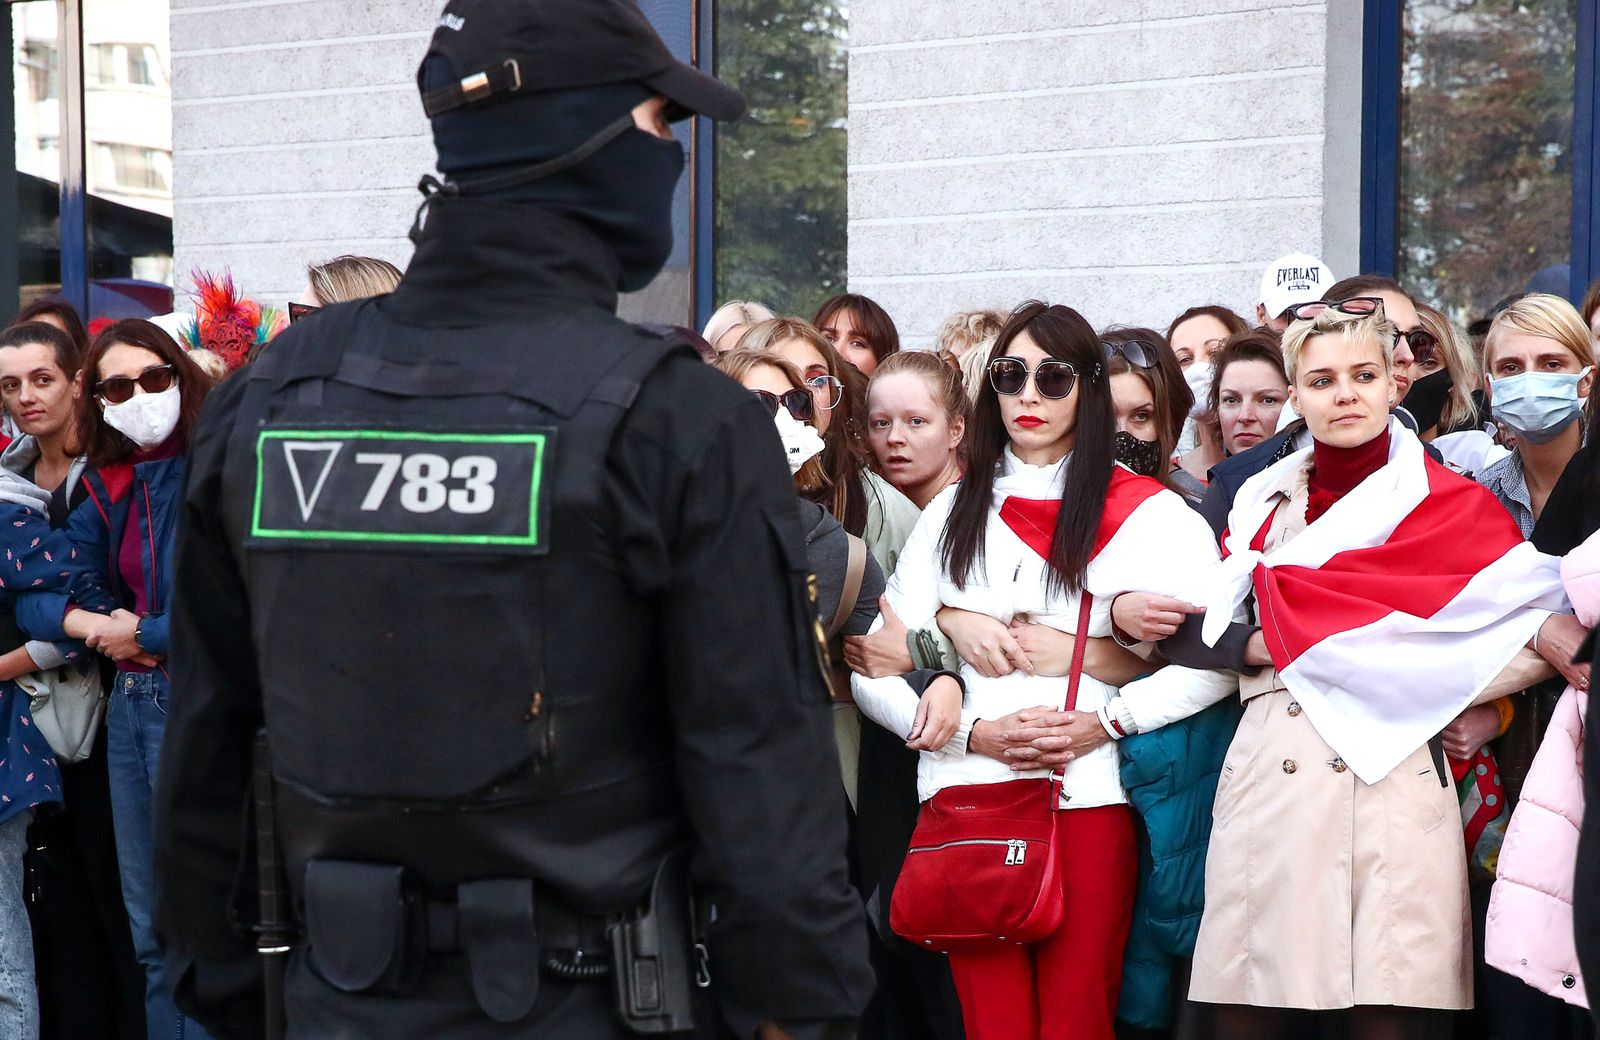 MINSK, BELARUS SEPTEMBER 19, 2020: A law enforcement officers observes participants in the Bright March for Women s S